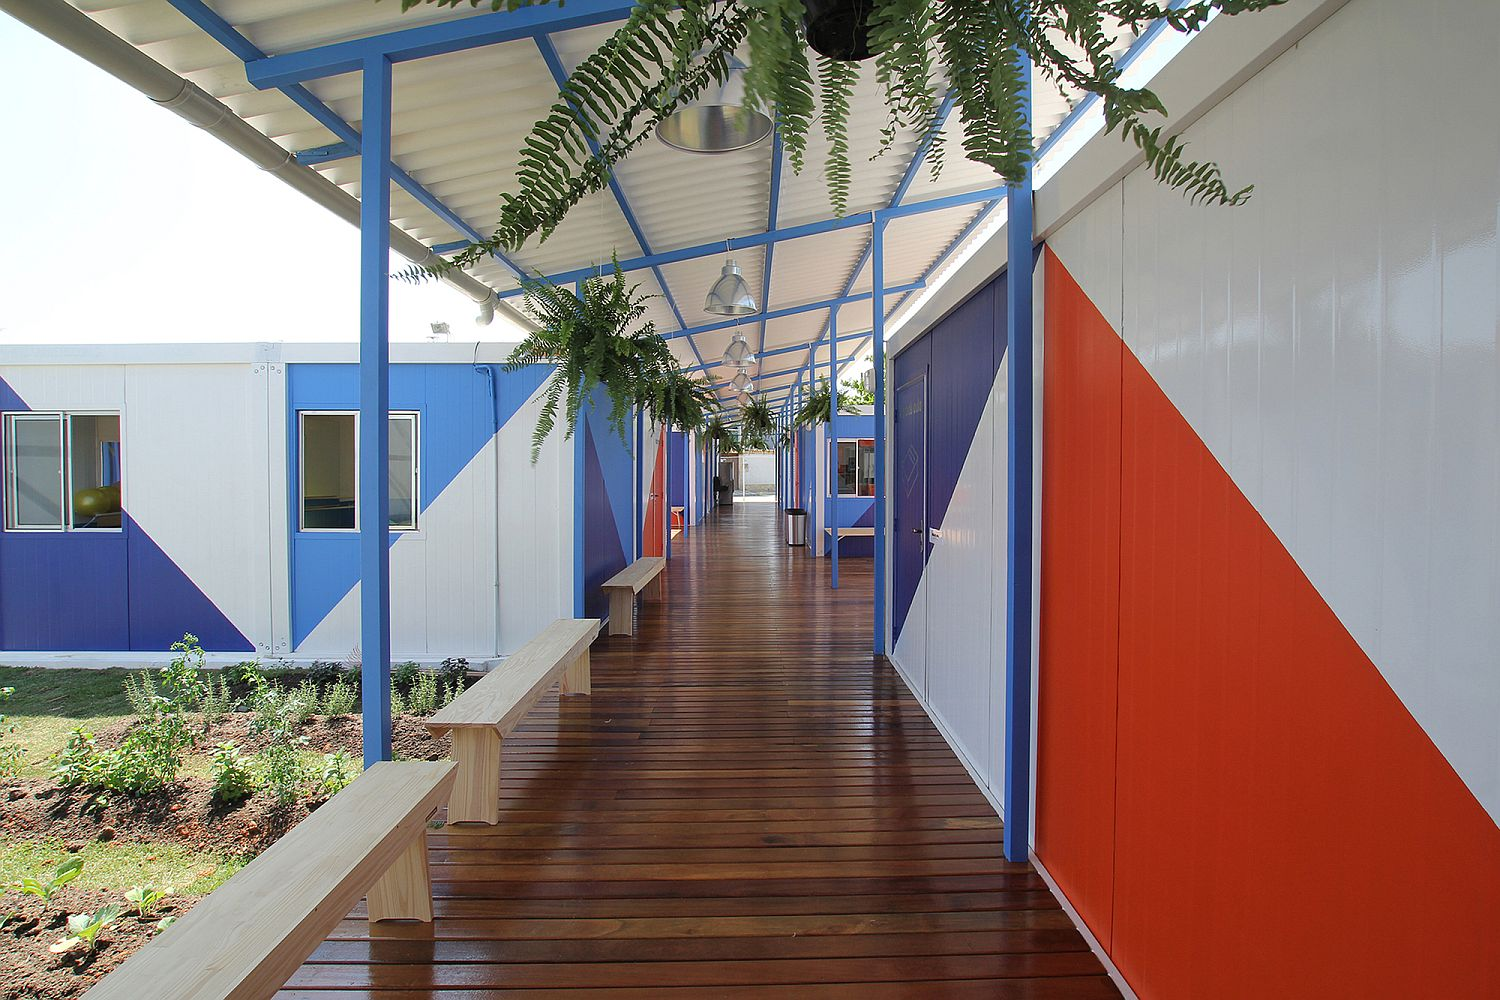 Long and sheltered corridors of the social center